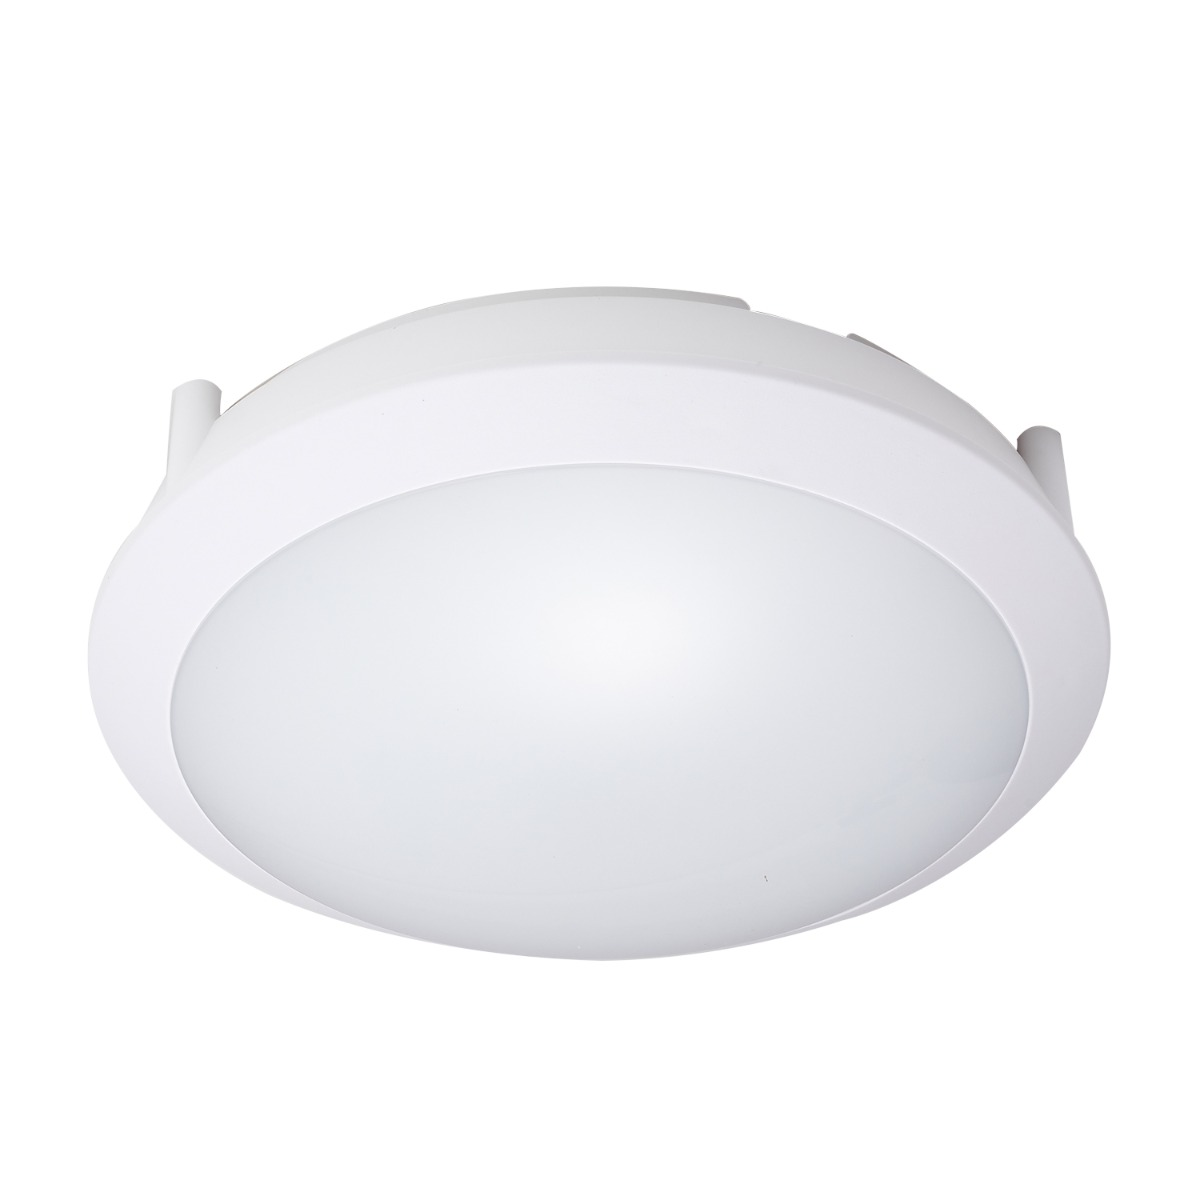 Noxion LED Bulkhead Pro 20W 2700K/3000K/4000K Tunable White | 2000lm - Replacer for 2x26W